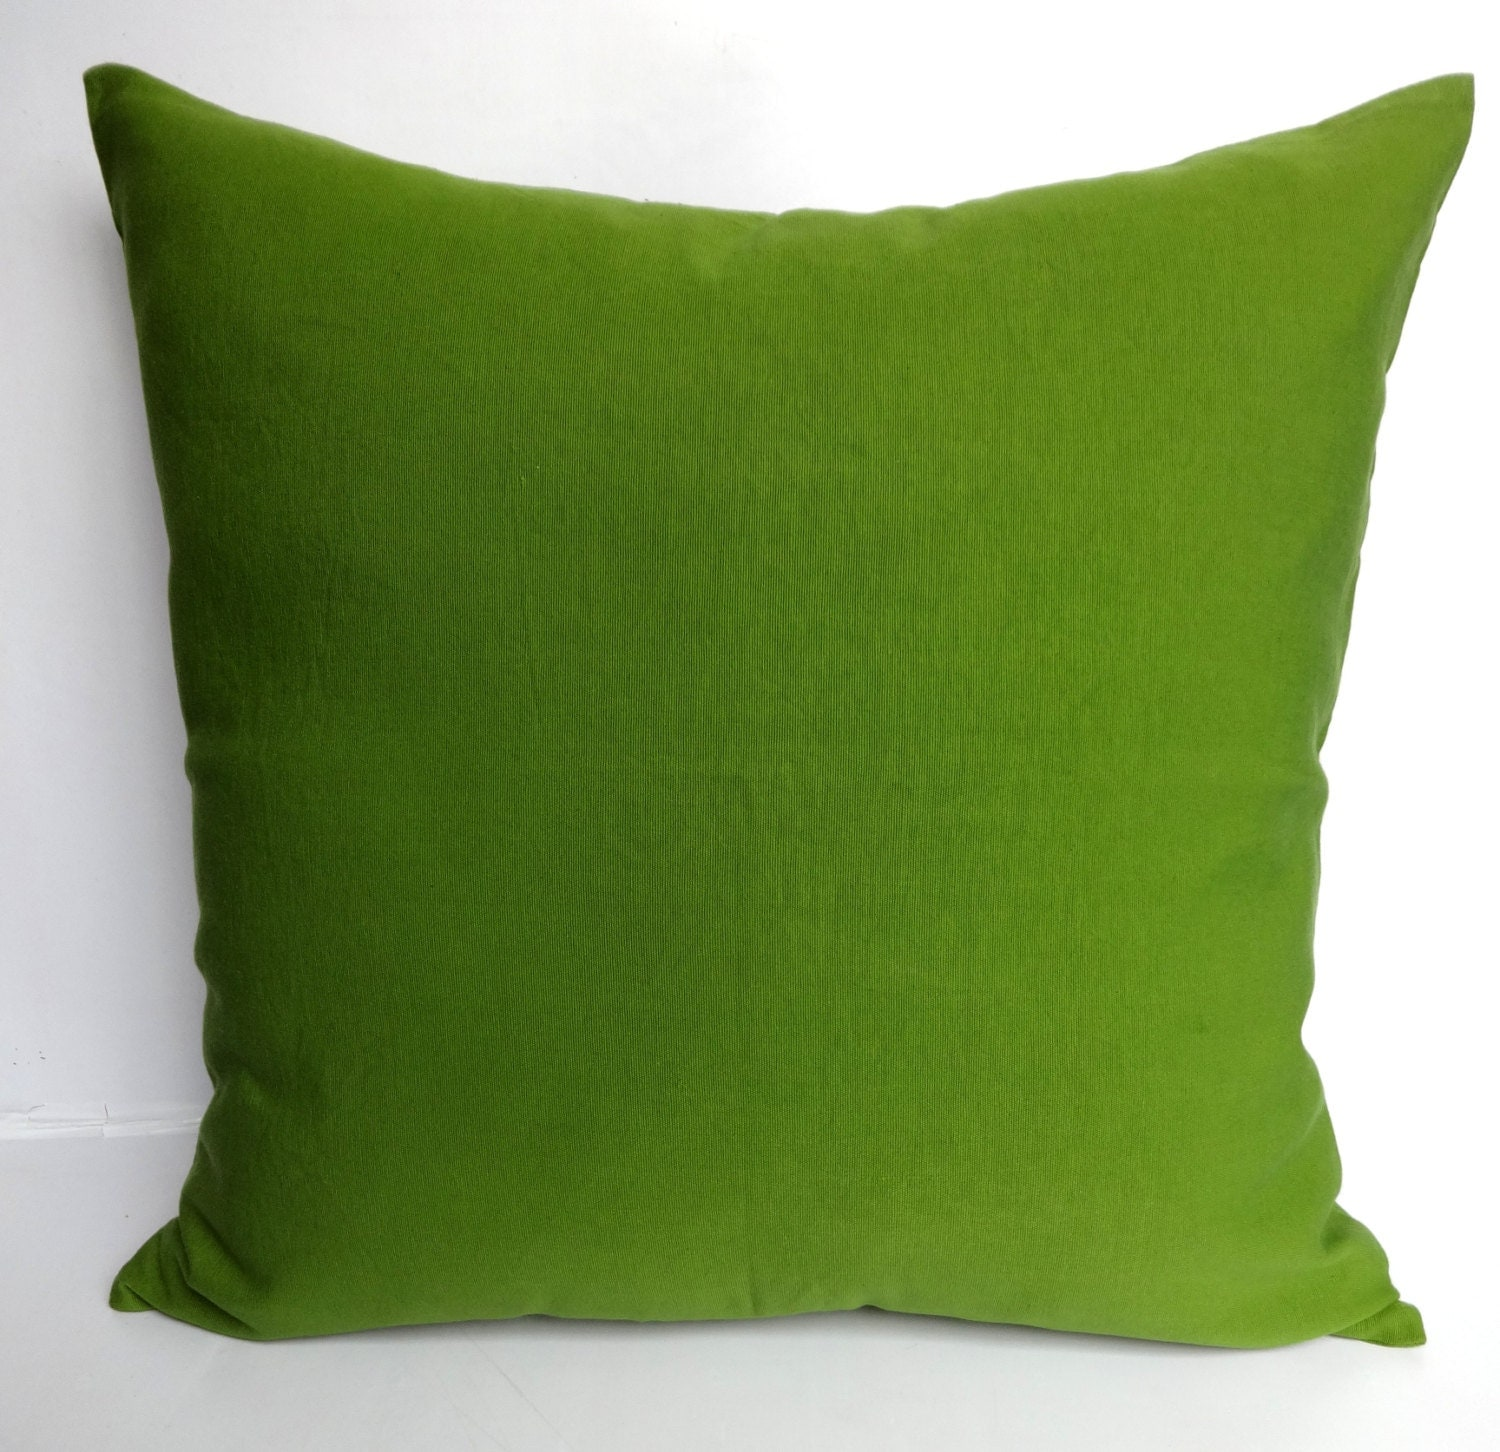 Green Floor Pillows : Olive Green Cotton pillow. hand loom pillow. Floor pillows